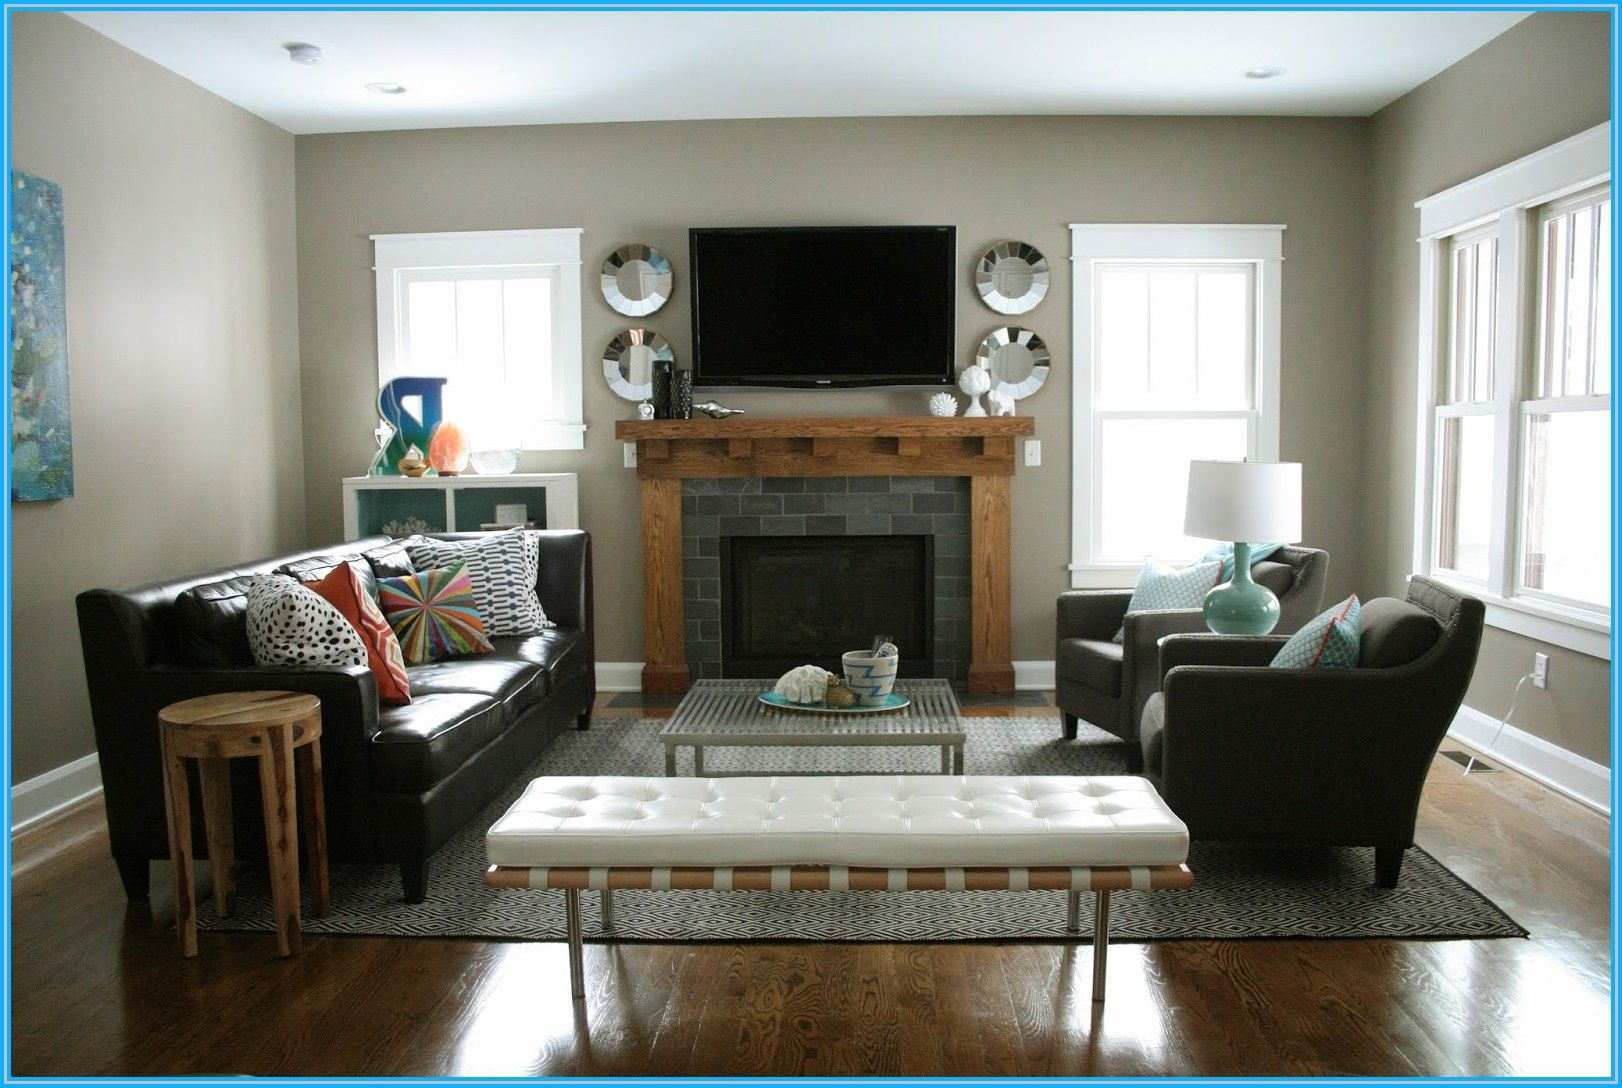 Living Room Layout With Fireplace And Tv On Opposite Walls Jpg